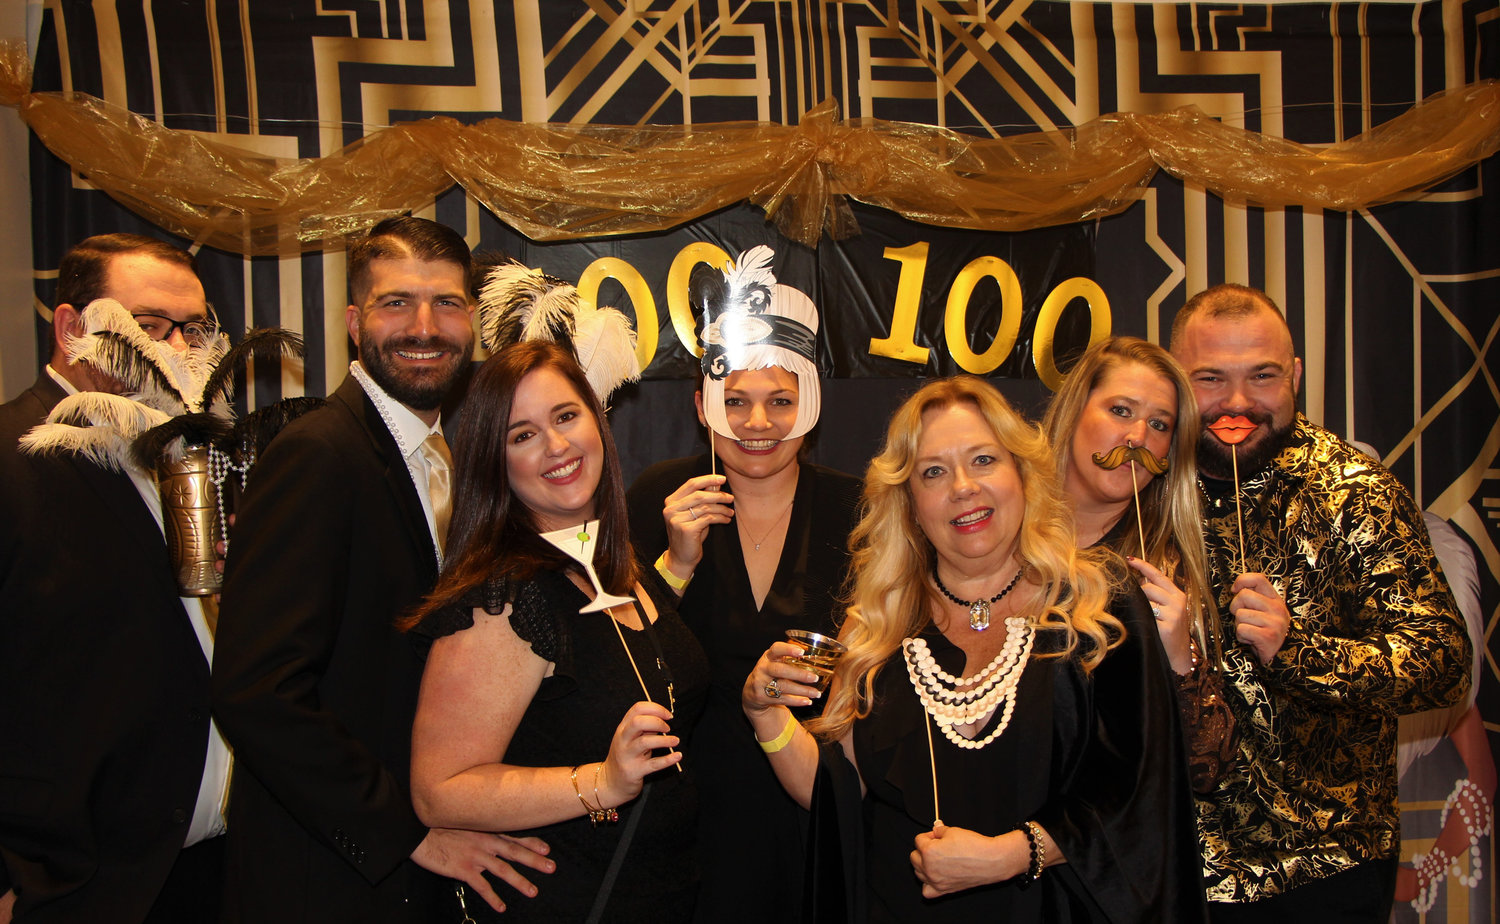 The Baldwin Public Library celebrated its 100th anniversary with a Centennial Gala last Saturday, where, from left,  Mike Randell, Jim and Leigh LaPorta, Devon Kelly, Madeline Atkin, Tara Mahoney and Ryan Kelly joined the fun.